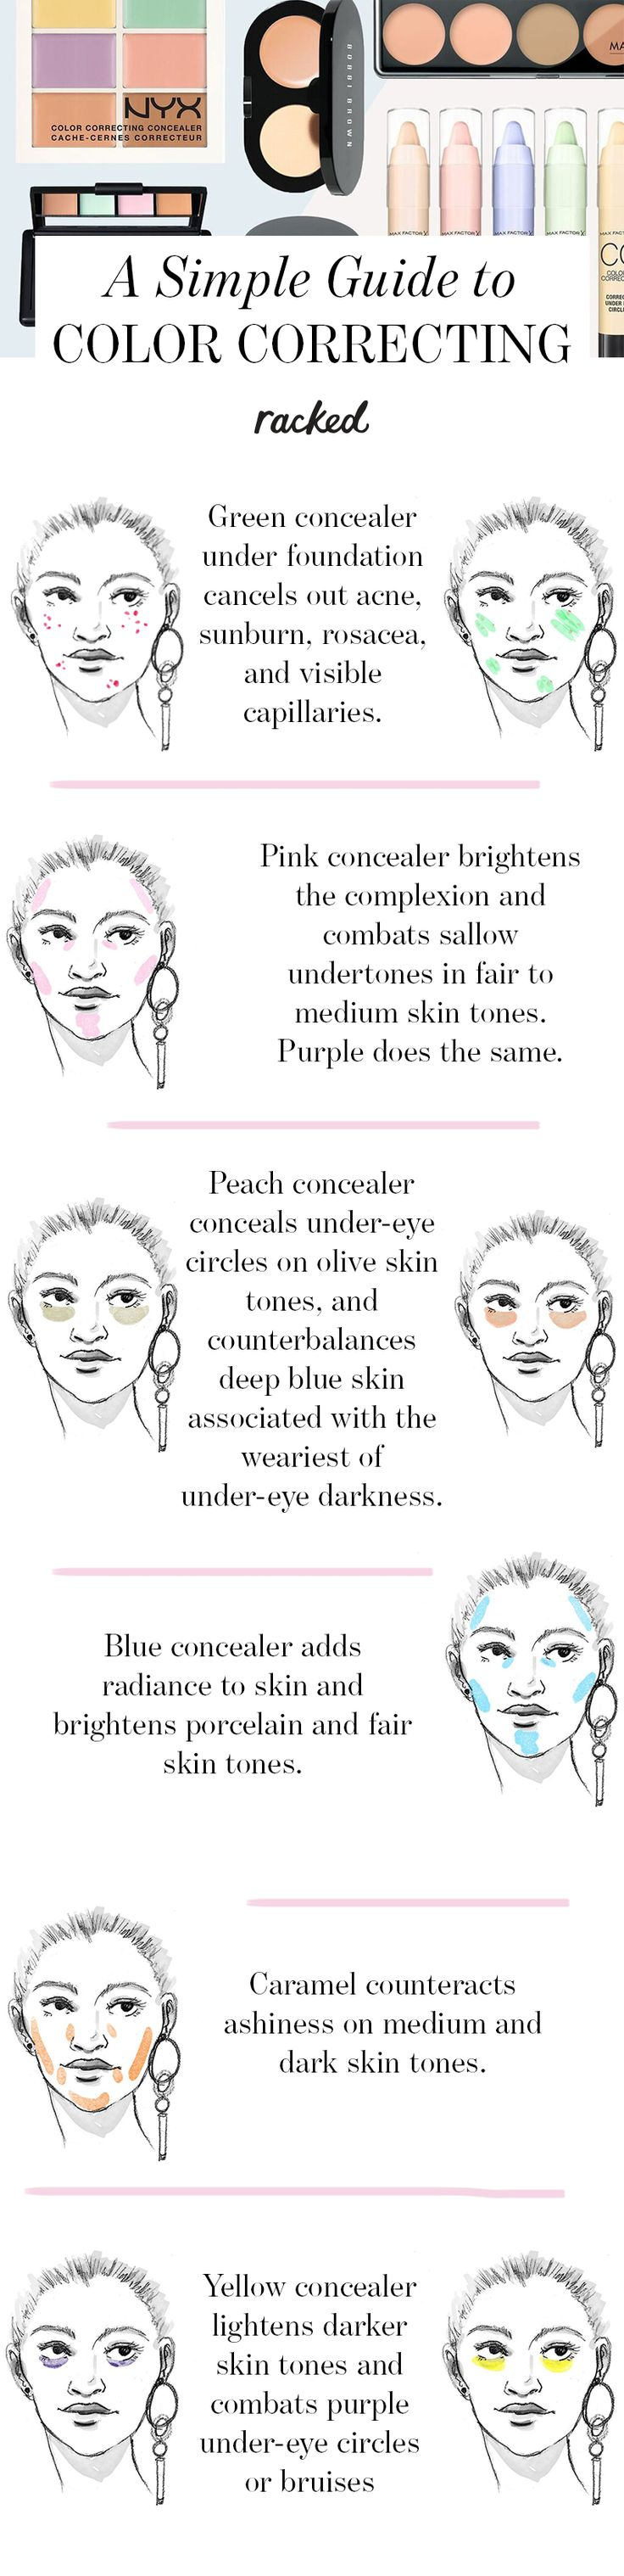 I need this! A Simple Guide to Color-Correcting Makeup, and How to Cover Blemishes. // More Tips & Tricks: (http://www.racked.com/2016/3/10/11180236/color-correcting-guide)